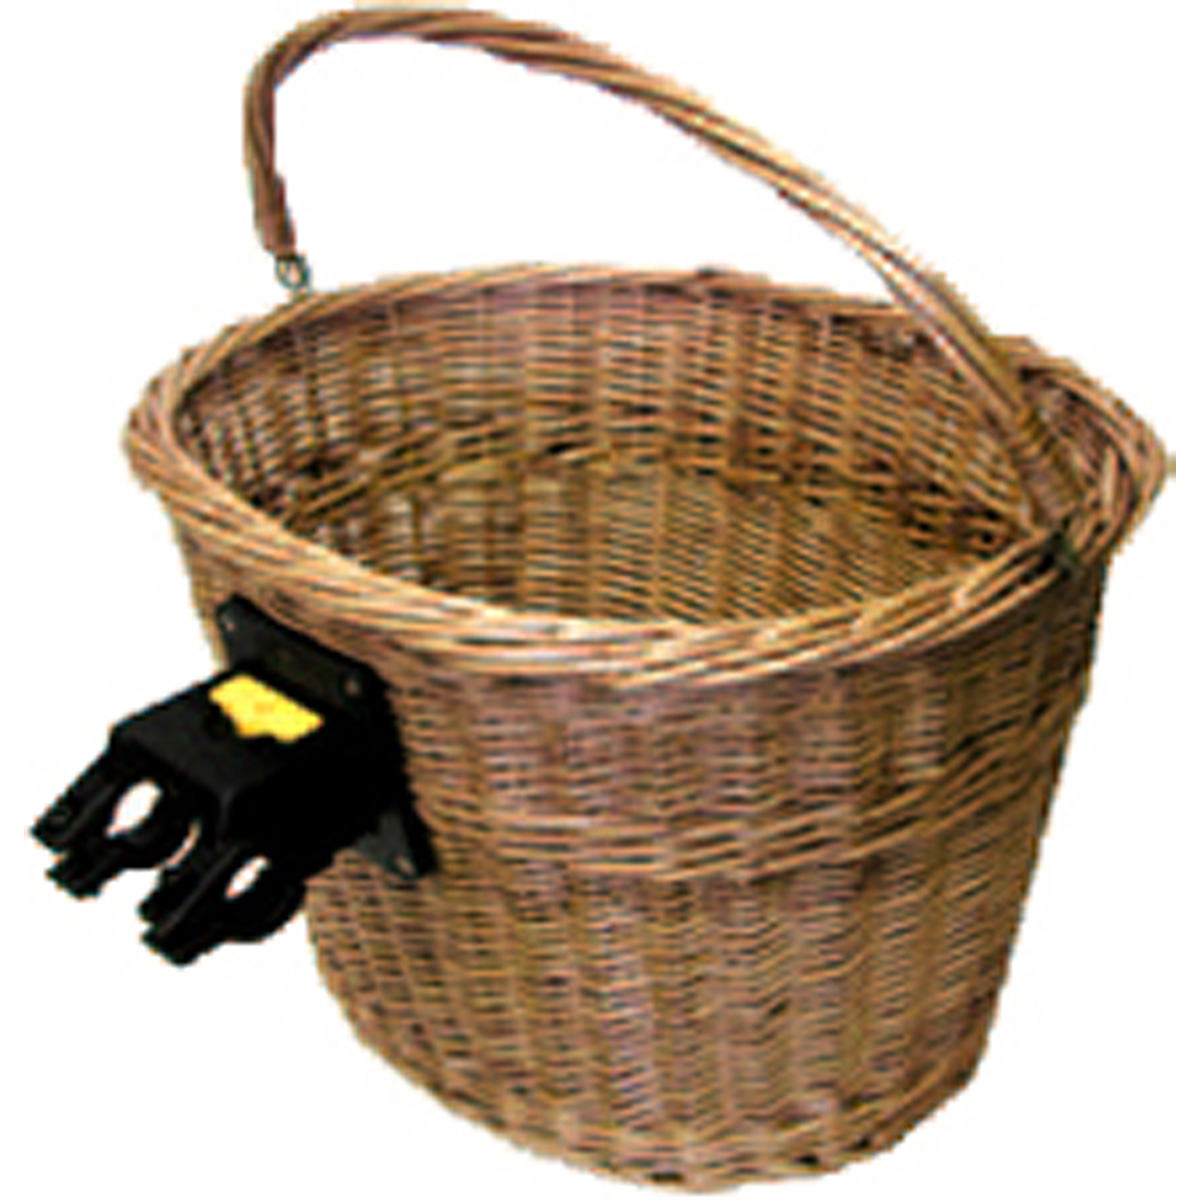 Summit Wicker Quick Release Bicycle Basket w/Handle